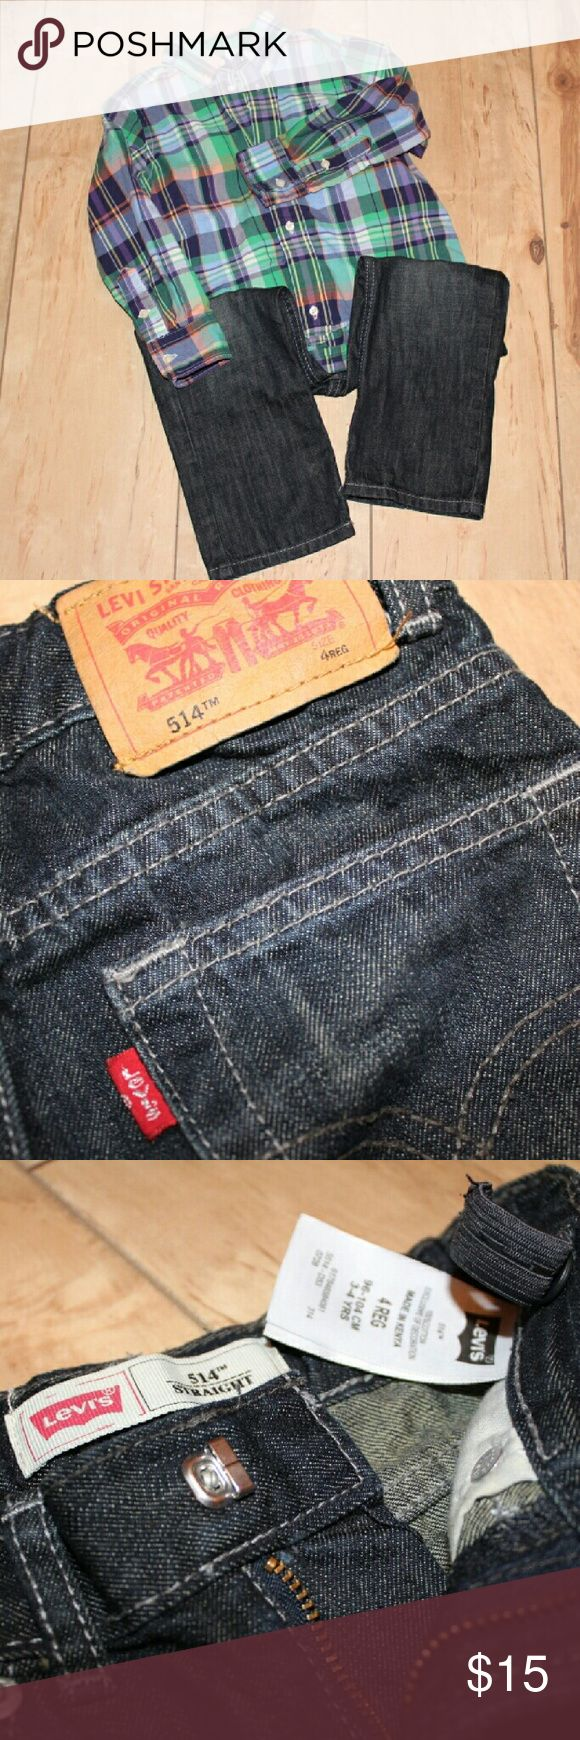 Levis 514 Boys Toddler 4T R Adjustable (Dark Wash) Regular fit jeans are a 4T and are for boys. They are adjustable in the waist area. They are used but full of life. Levi's Bottoms Jeans